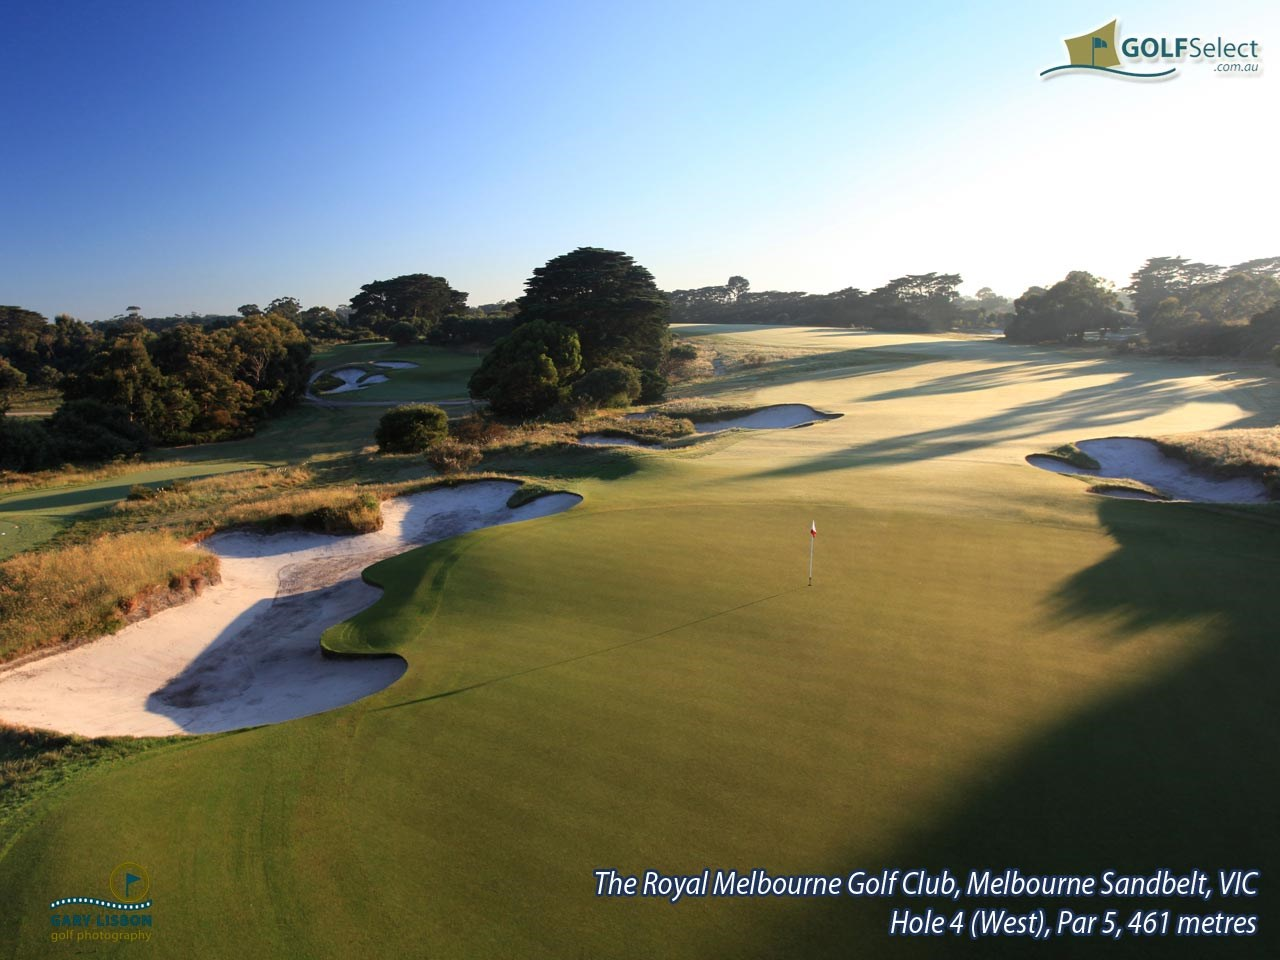 The Royal Melbourne Golf Club (West Course) Hole 4 (West), Par 5, 461 metres